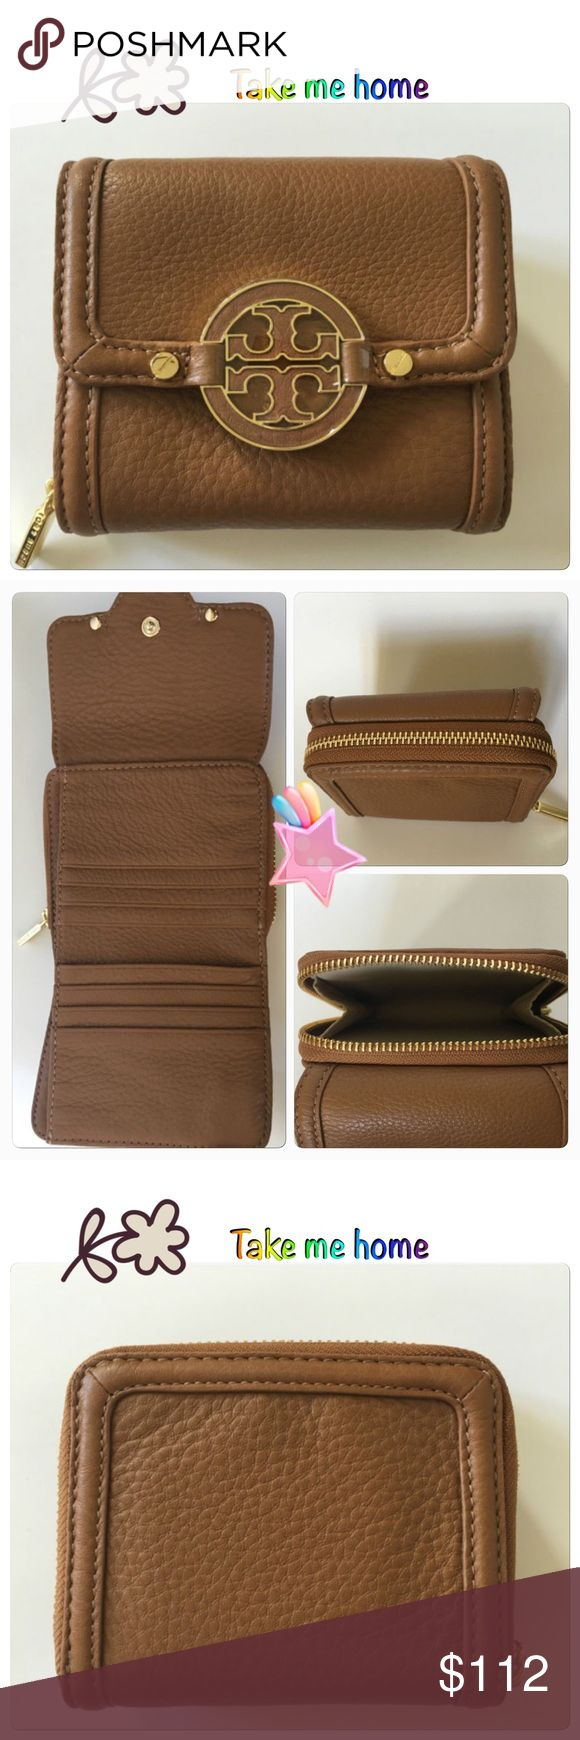 "NWT Tory Burch Tan Wallet NWT Tory Burch Amanda Tri-Fold Brown(Royal Tan) Pebbled Leather Zip Around Wallet  100% AUTHENTIC TORY BURCH WALLET   TORY BURCH AMANDA LOGO ON THE FRONT WITH FLAP SNAP CLOSURE PEBBLED LEATHER  BROWN(ROYAL TAN) COLORED GOLD TONED HARDWARE ZIPPER AROUND CLOSURE FOR COIN POCKET AT THE BACK OF THE WALLET 8 CREDIT CARDS SLOTS SLIP IN 2  COMPARTMENT ON EACH SIDE ONE LARGE SLIP IN COMPARTMENT  APPROXIMATE MEASUREMENTS: 4""(L) X 4.5"" (H)X 1.5""(D)  FULLY OPENED 10""(L)…"